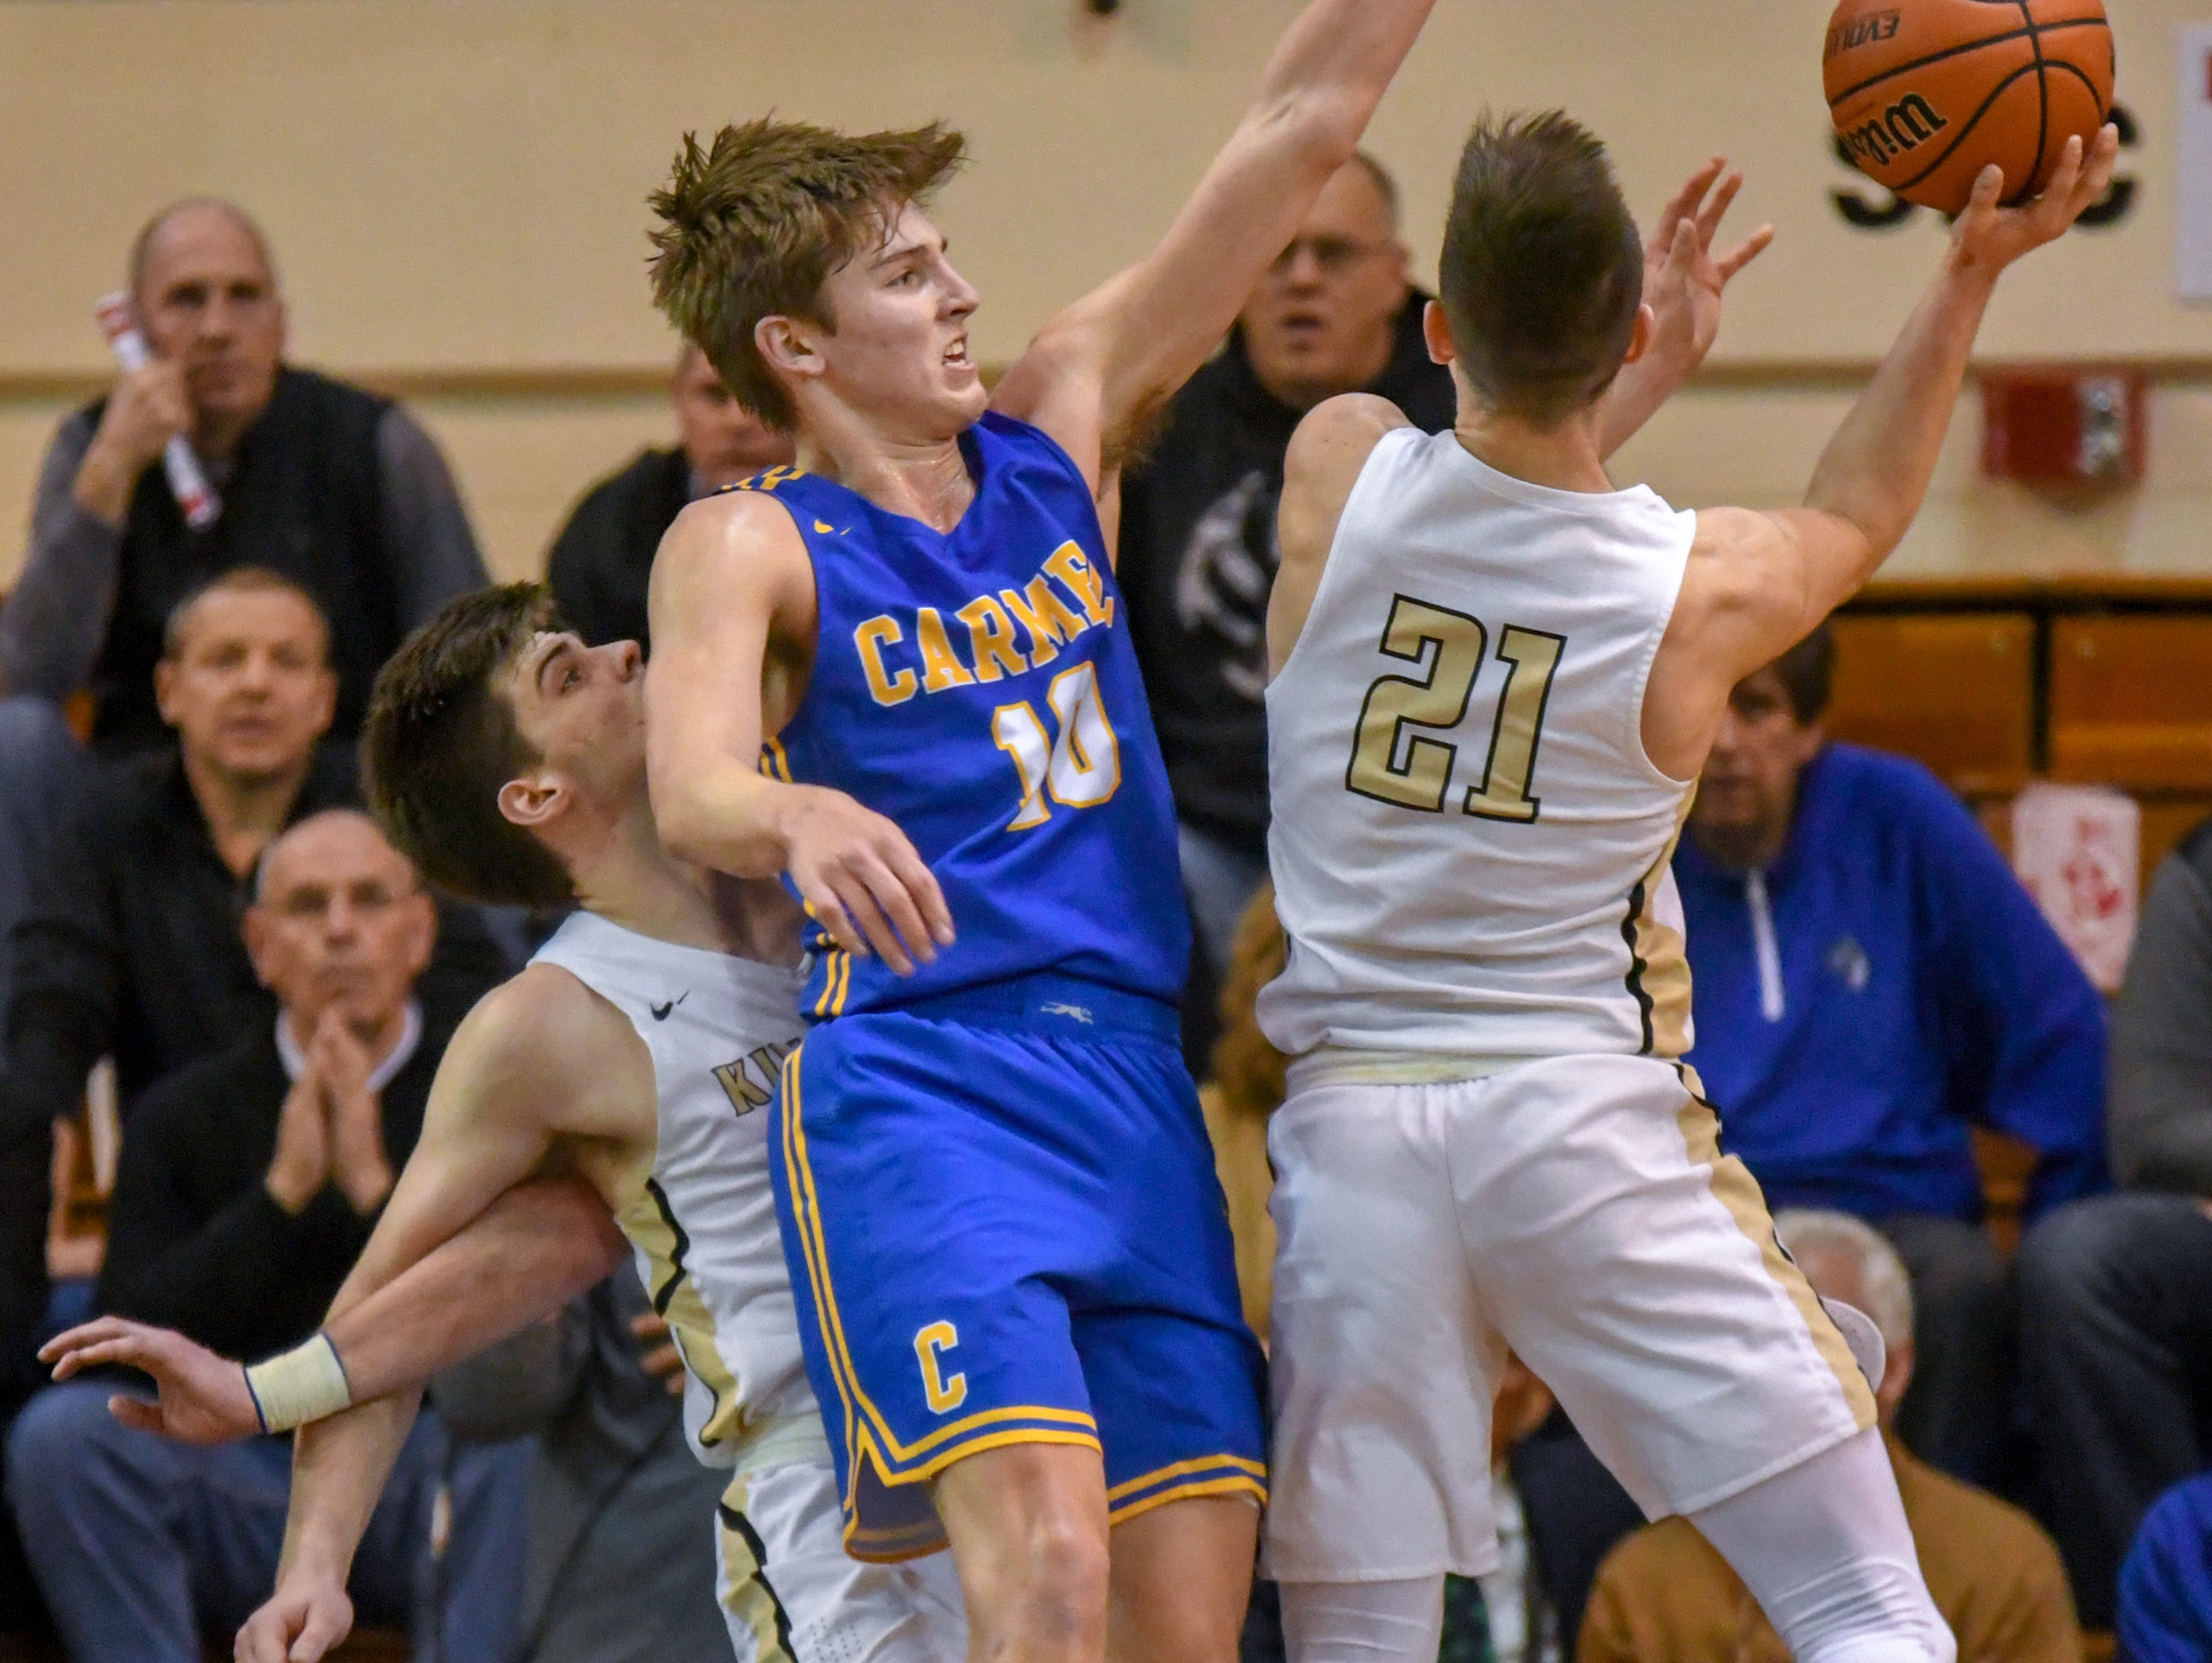 Carmel's Pete Suder during his teams 71-42 win over Penn High School in Lafayette on Saturday March 16, 2019. Carmel moves on to the state finals after winning the 4A semi-state today.